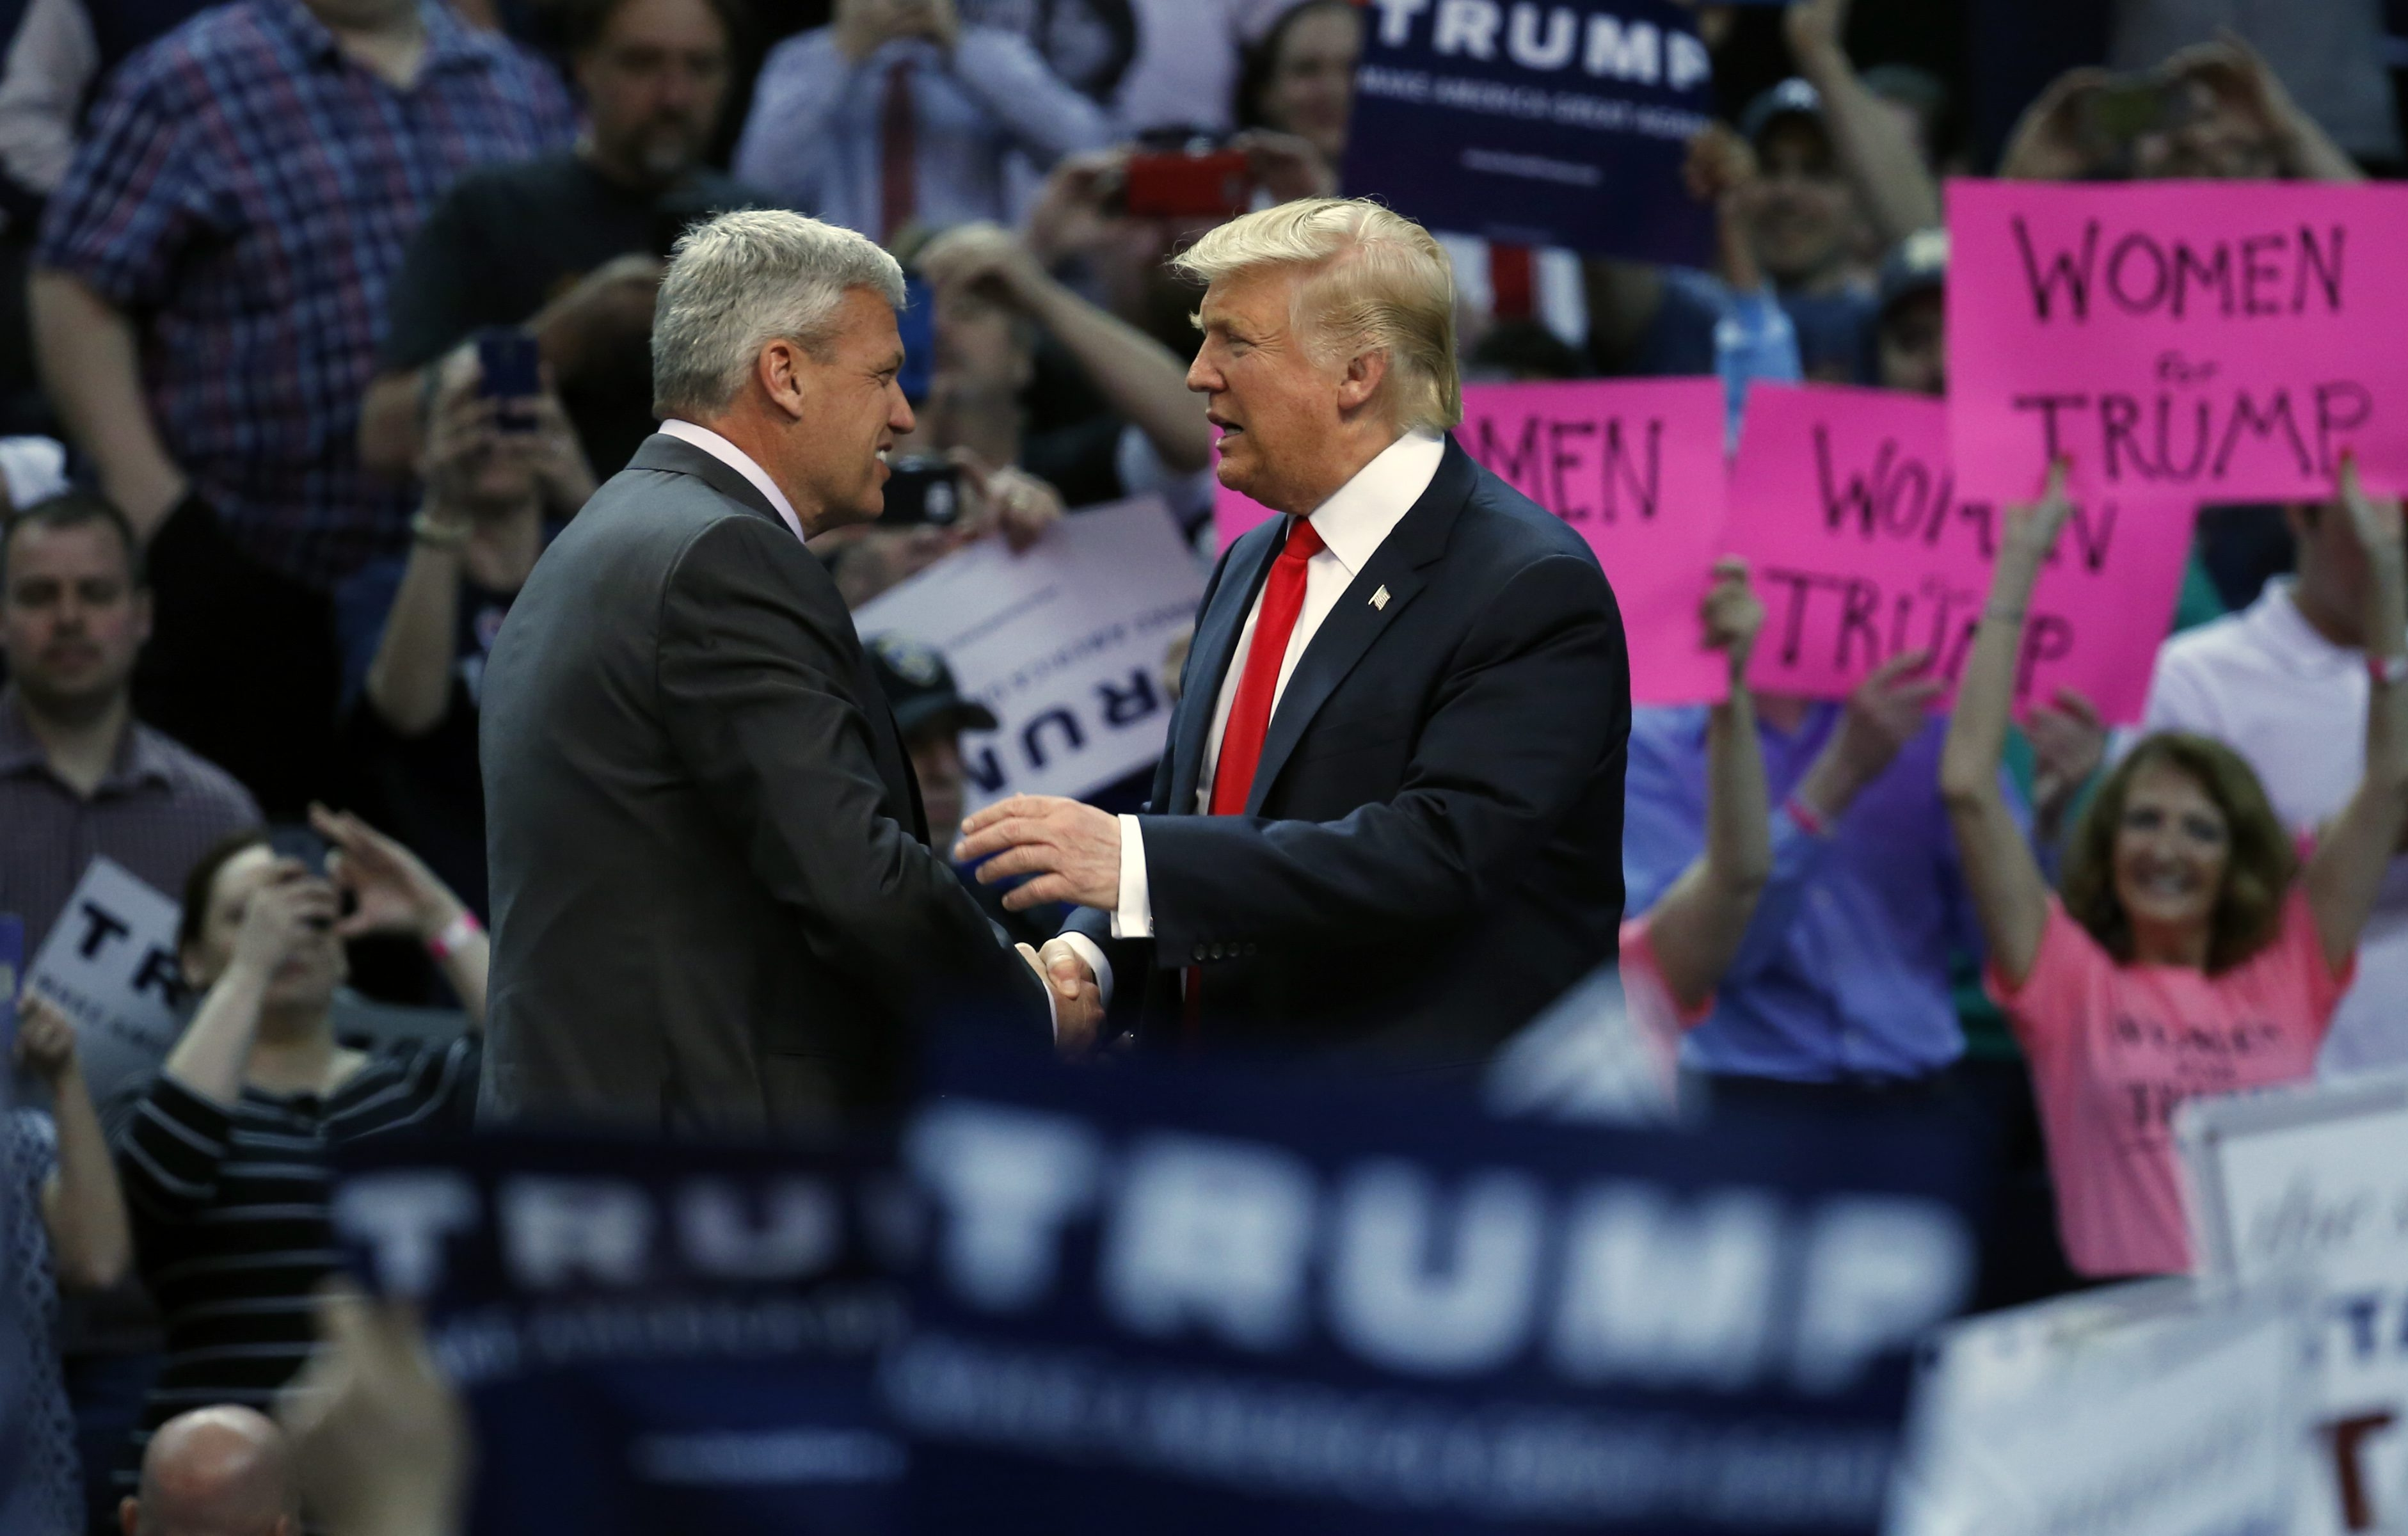 Buffalo Bills head coach Rex Ryan introduces Republican presidential candidate Donald Trump at Trump's rally at First Niagara Center on April 18, 2016.